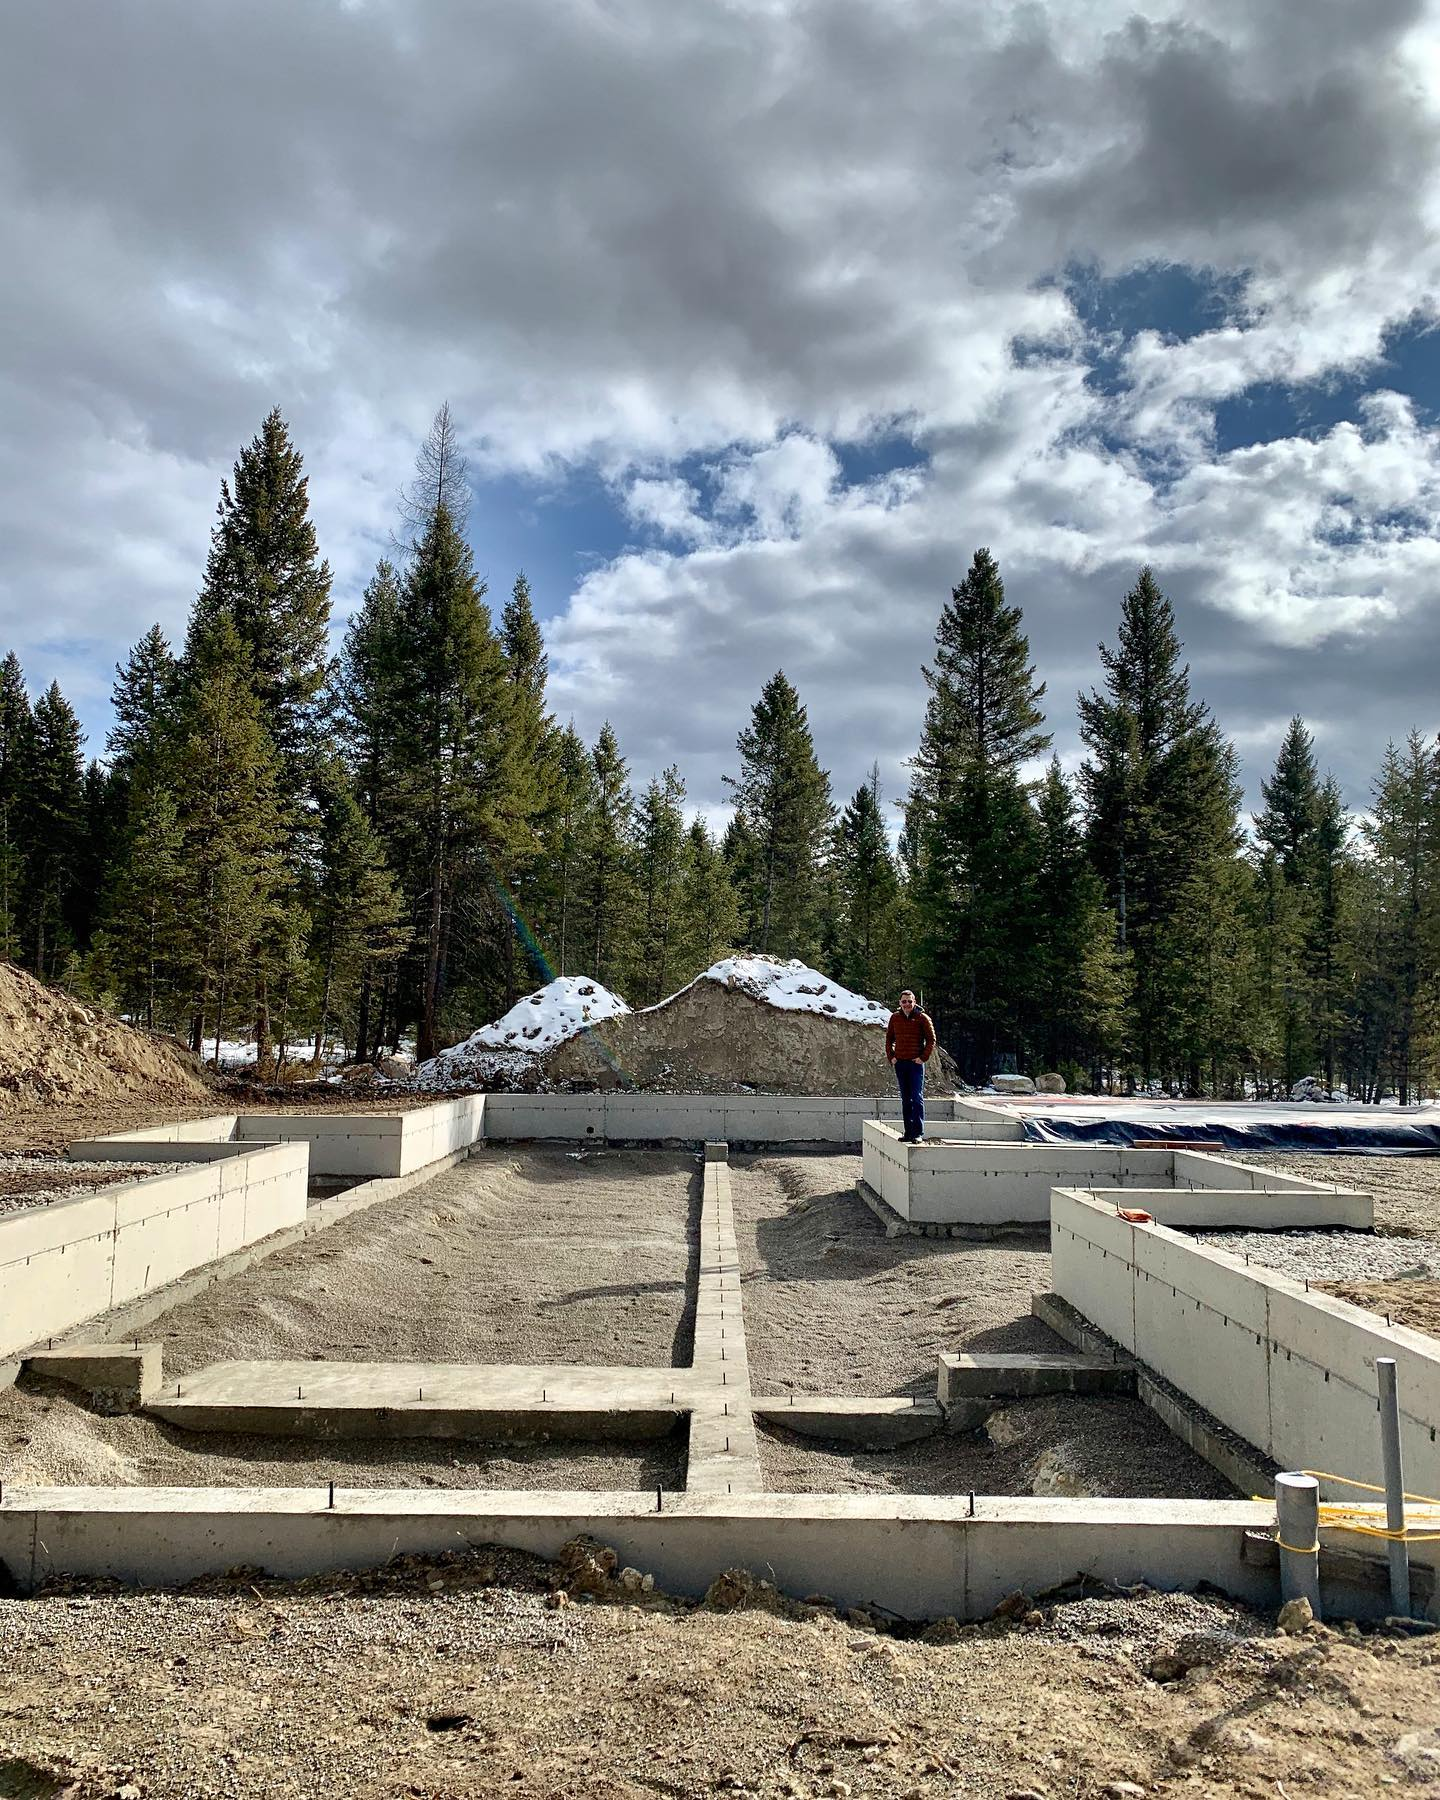 Suns out whitefish custom home builder